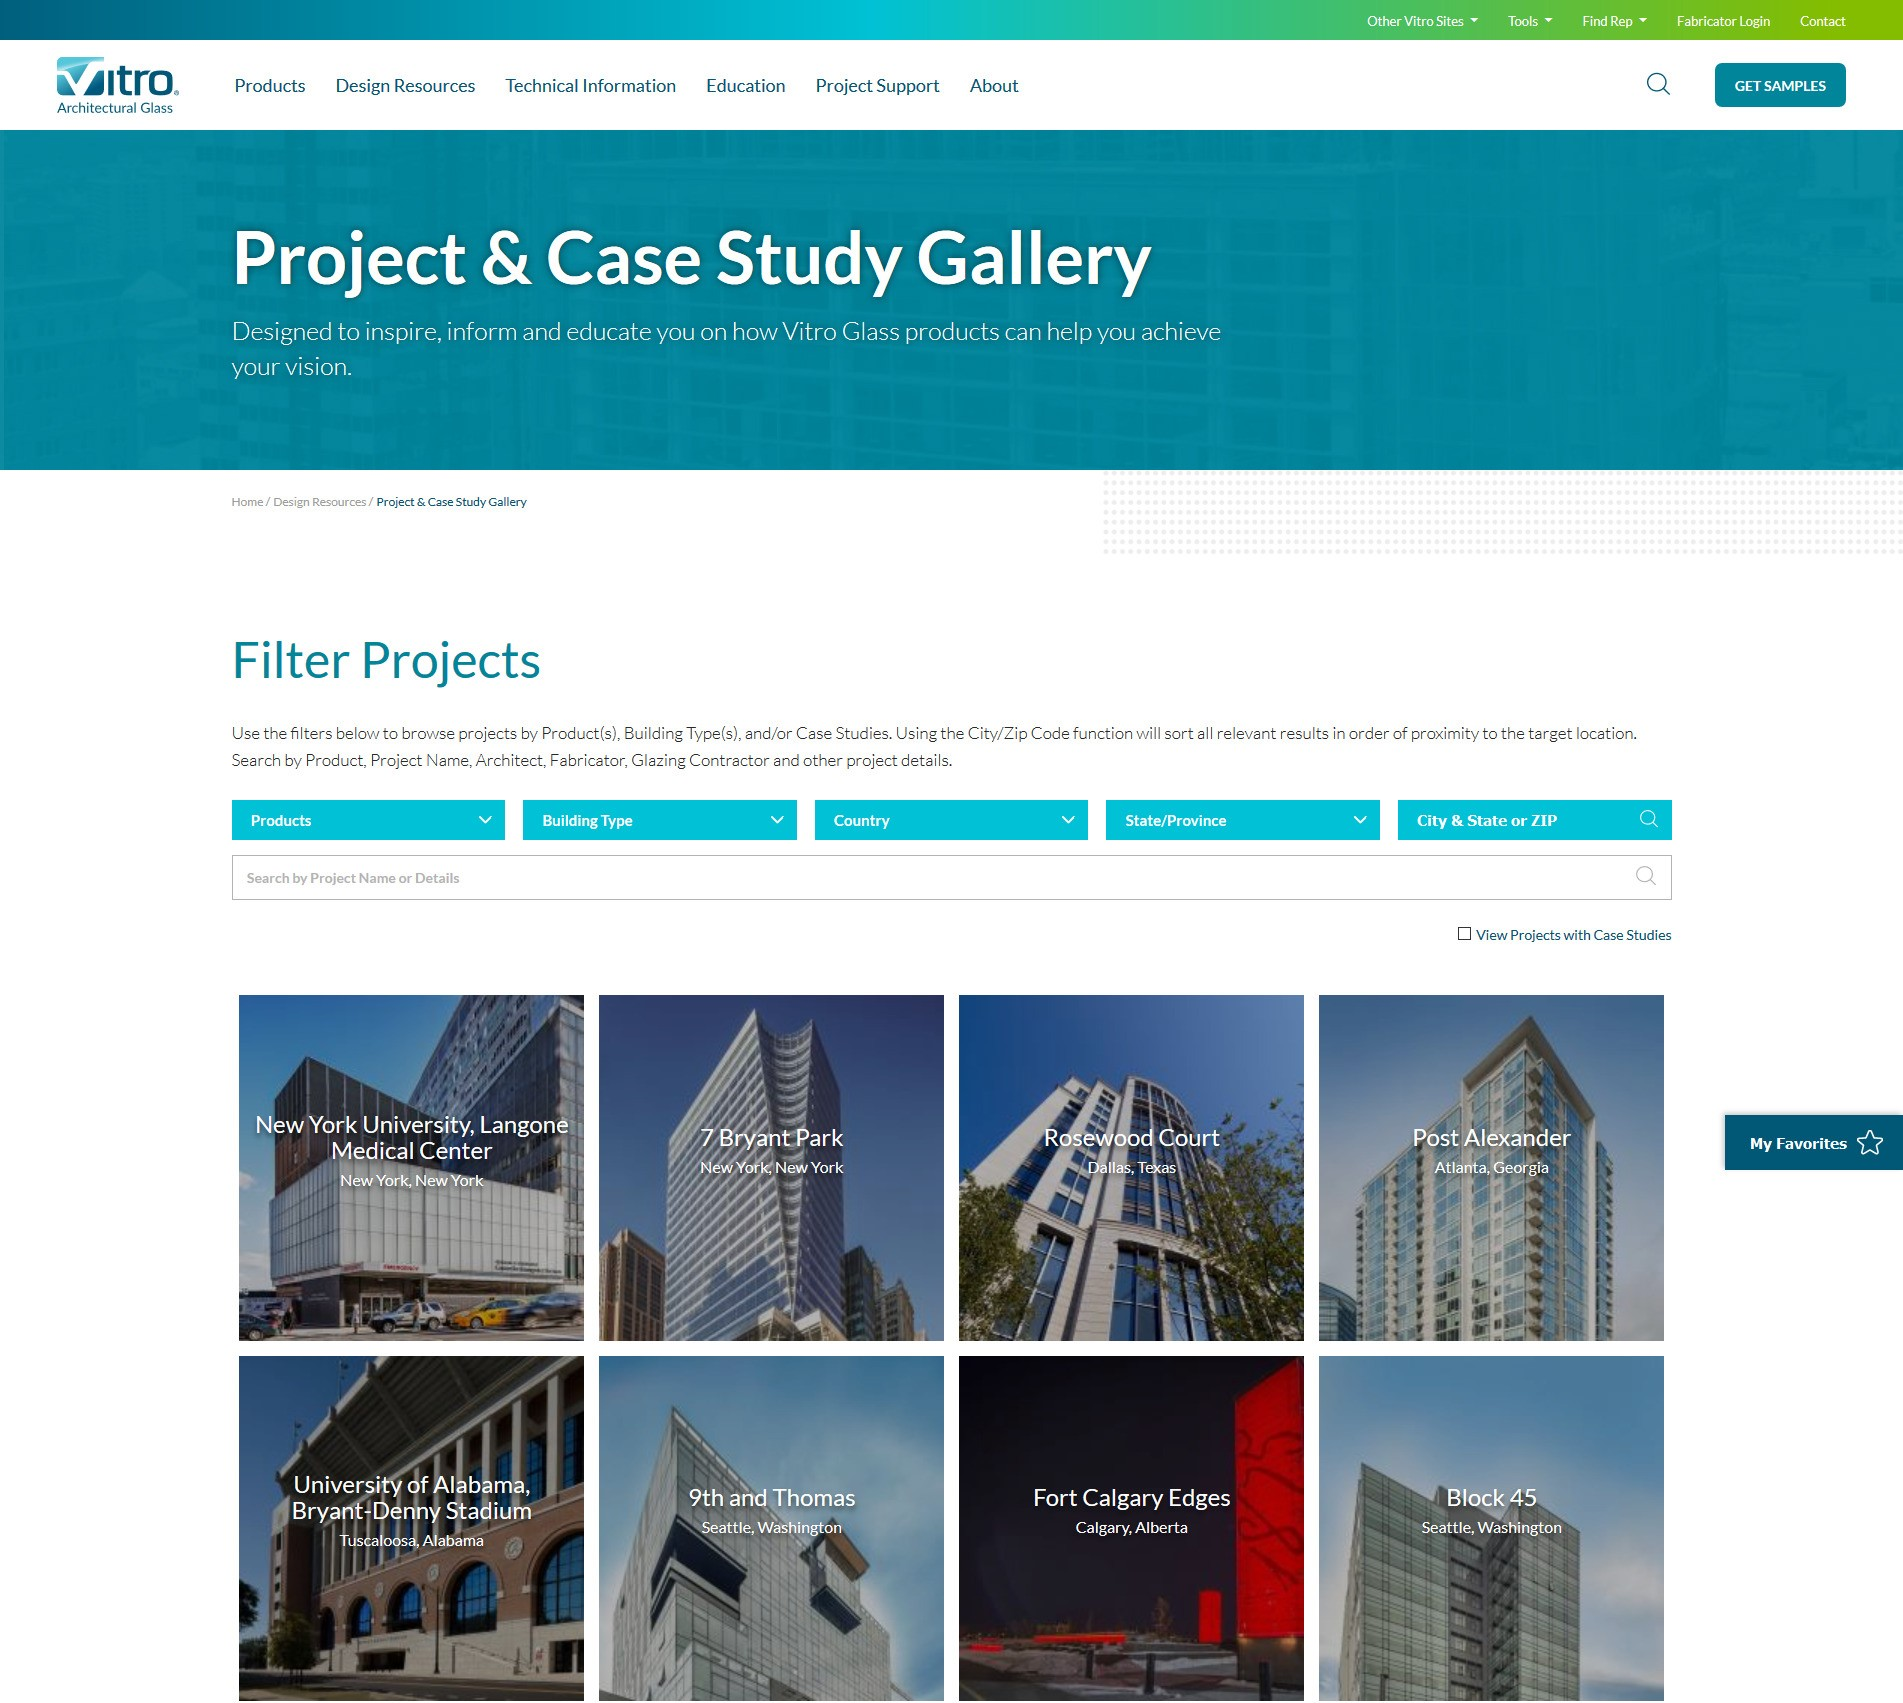 Vitro Project Gallery Homepage